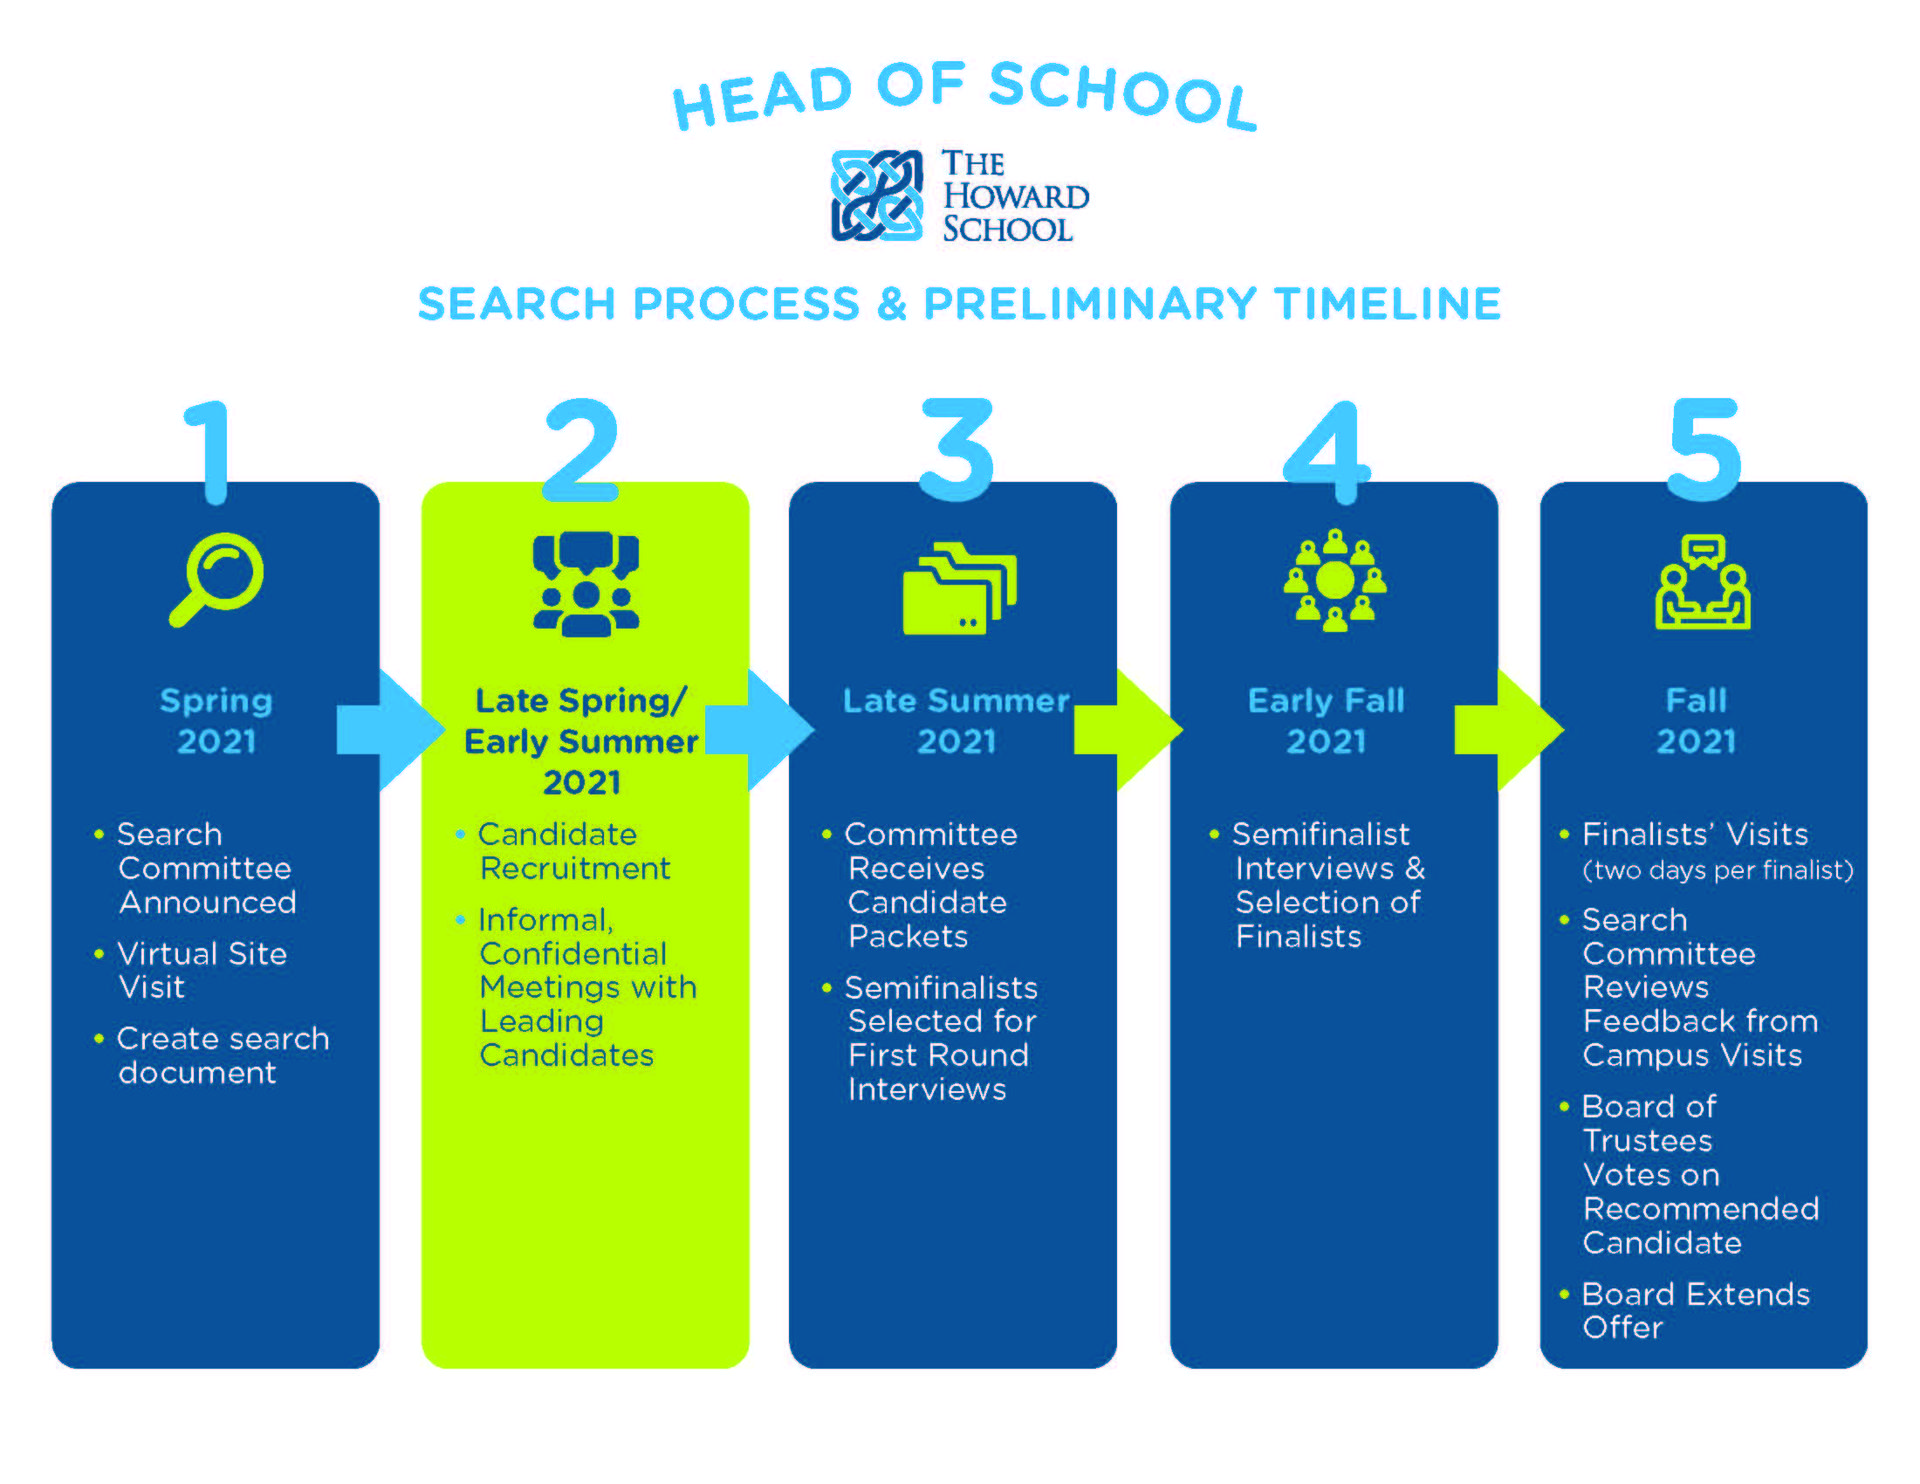 Head of School Search Preliminary Timeline